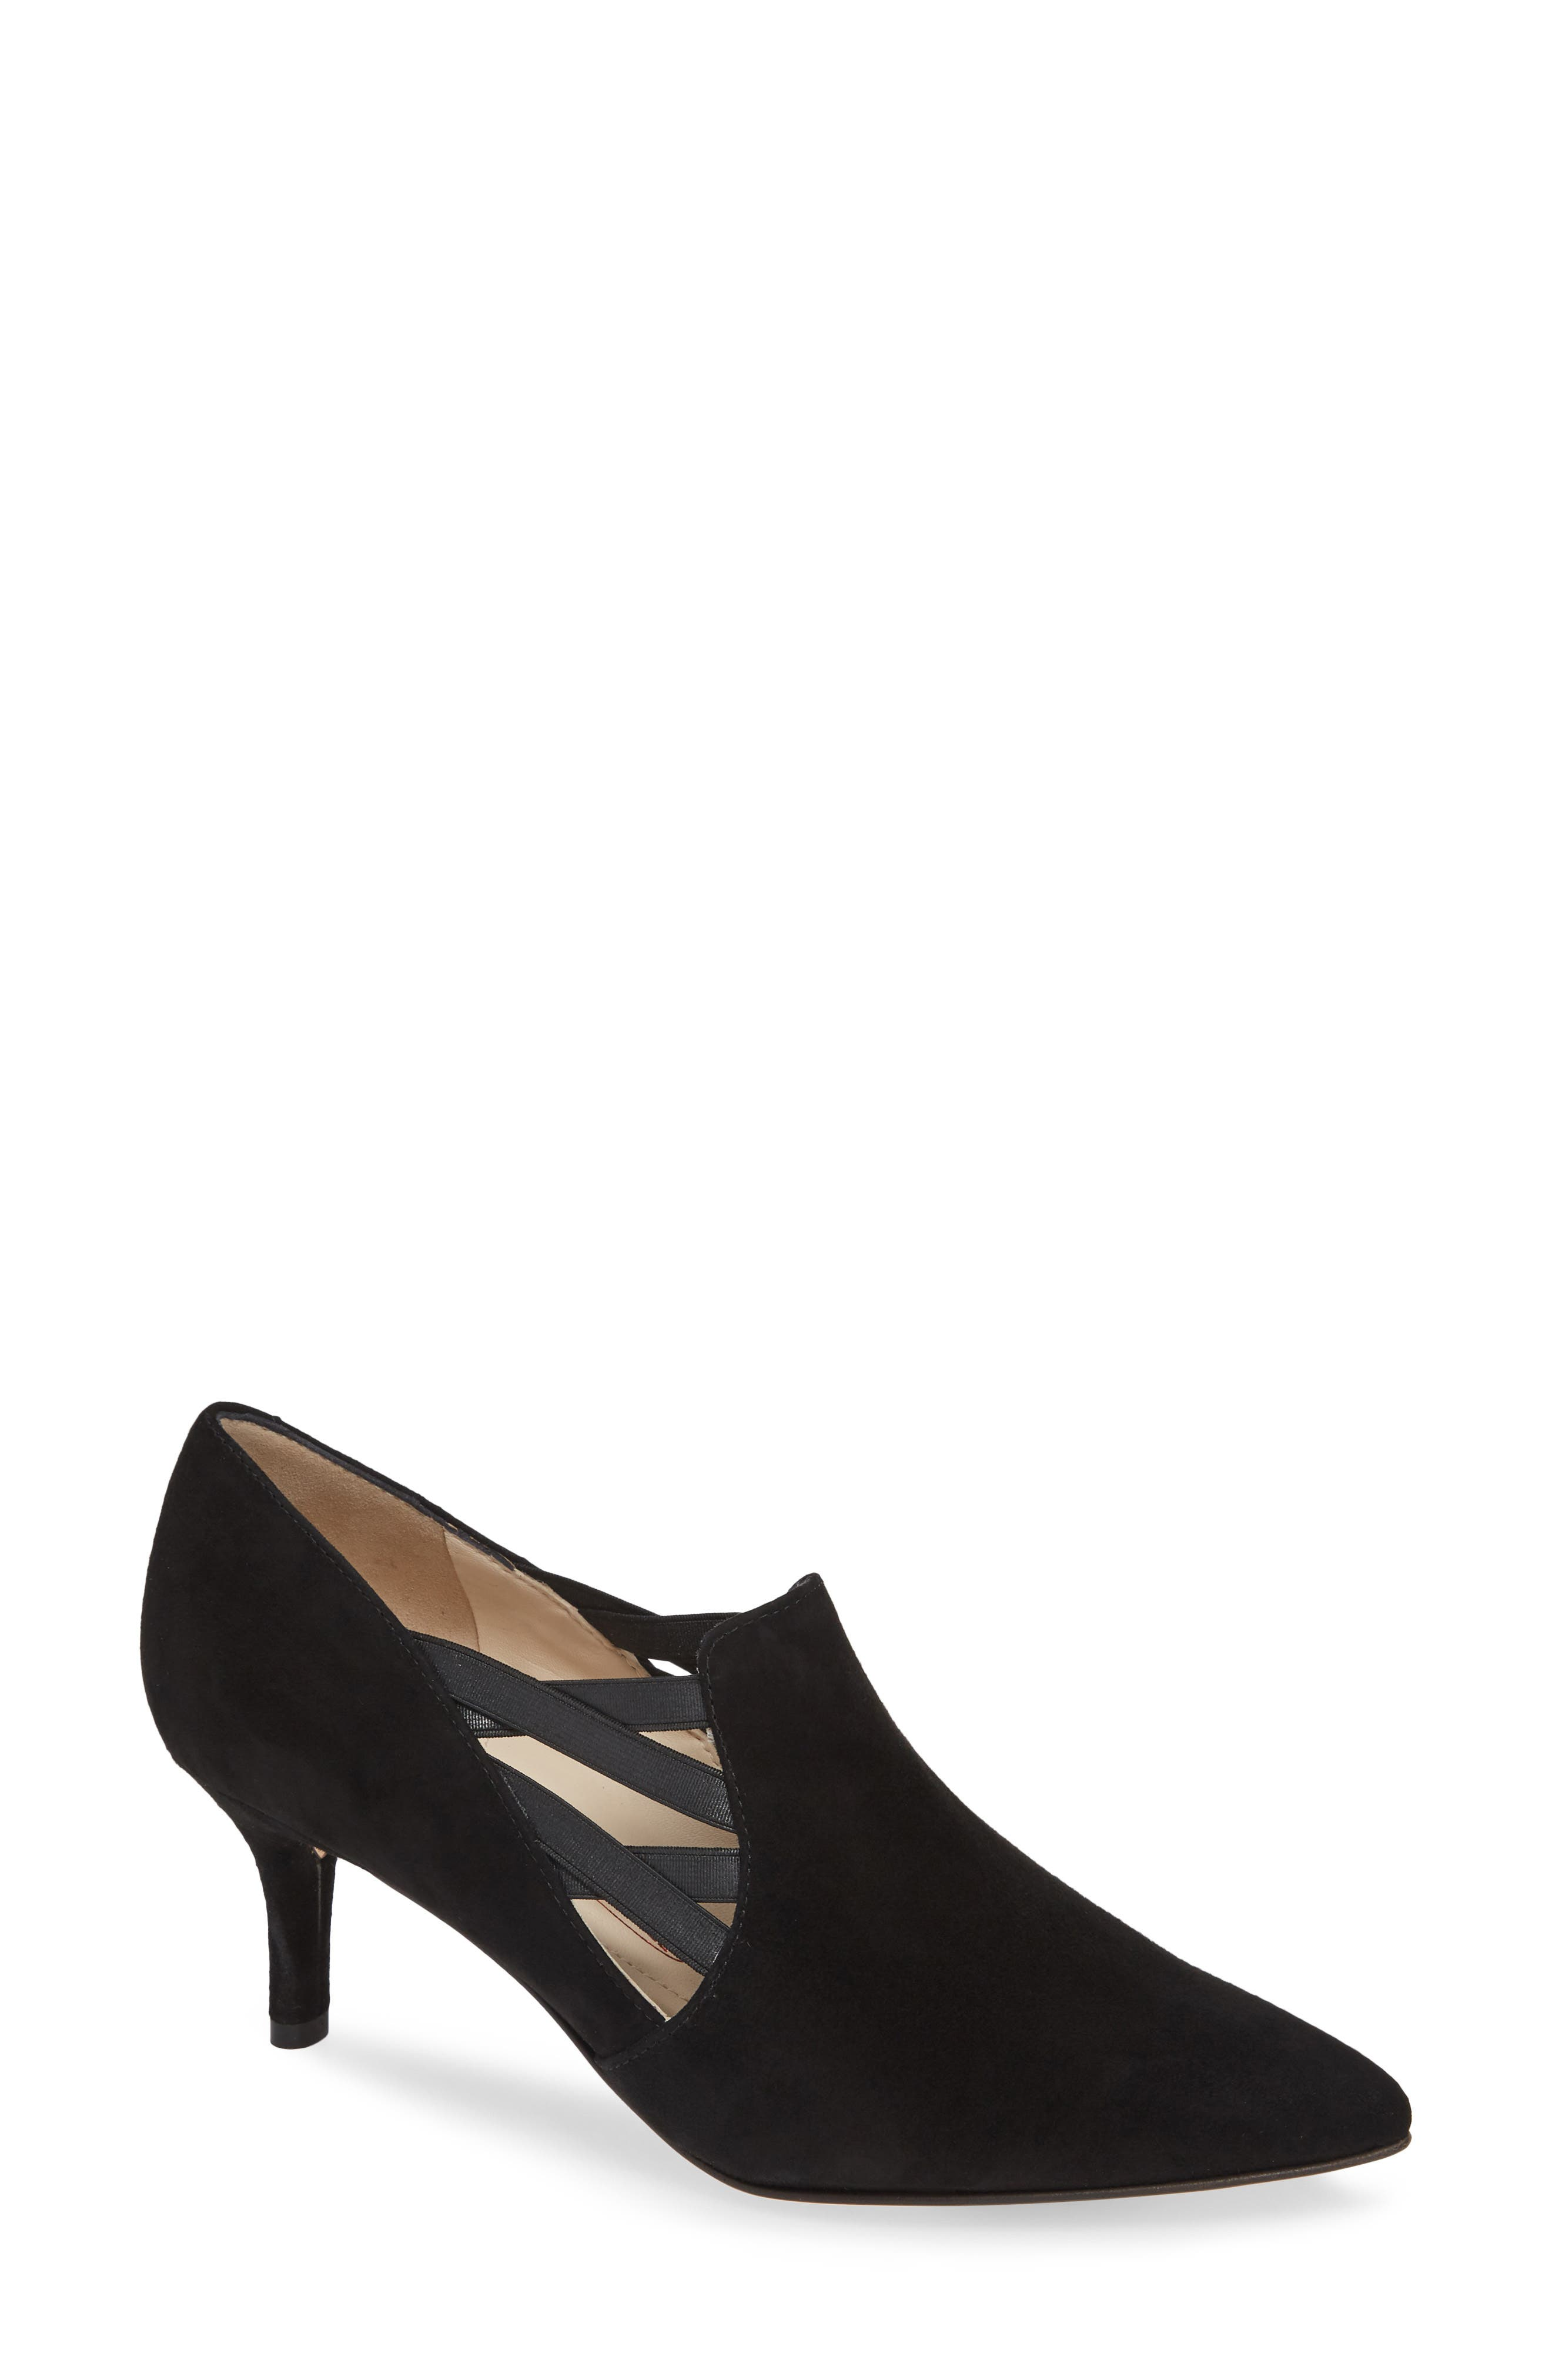 AMALFI BY RANGONI Paola Stretch-Side Suede Low-Pump in Black